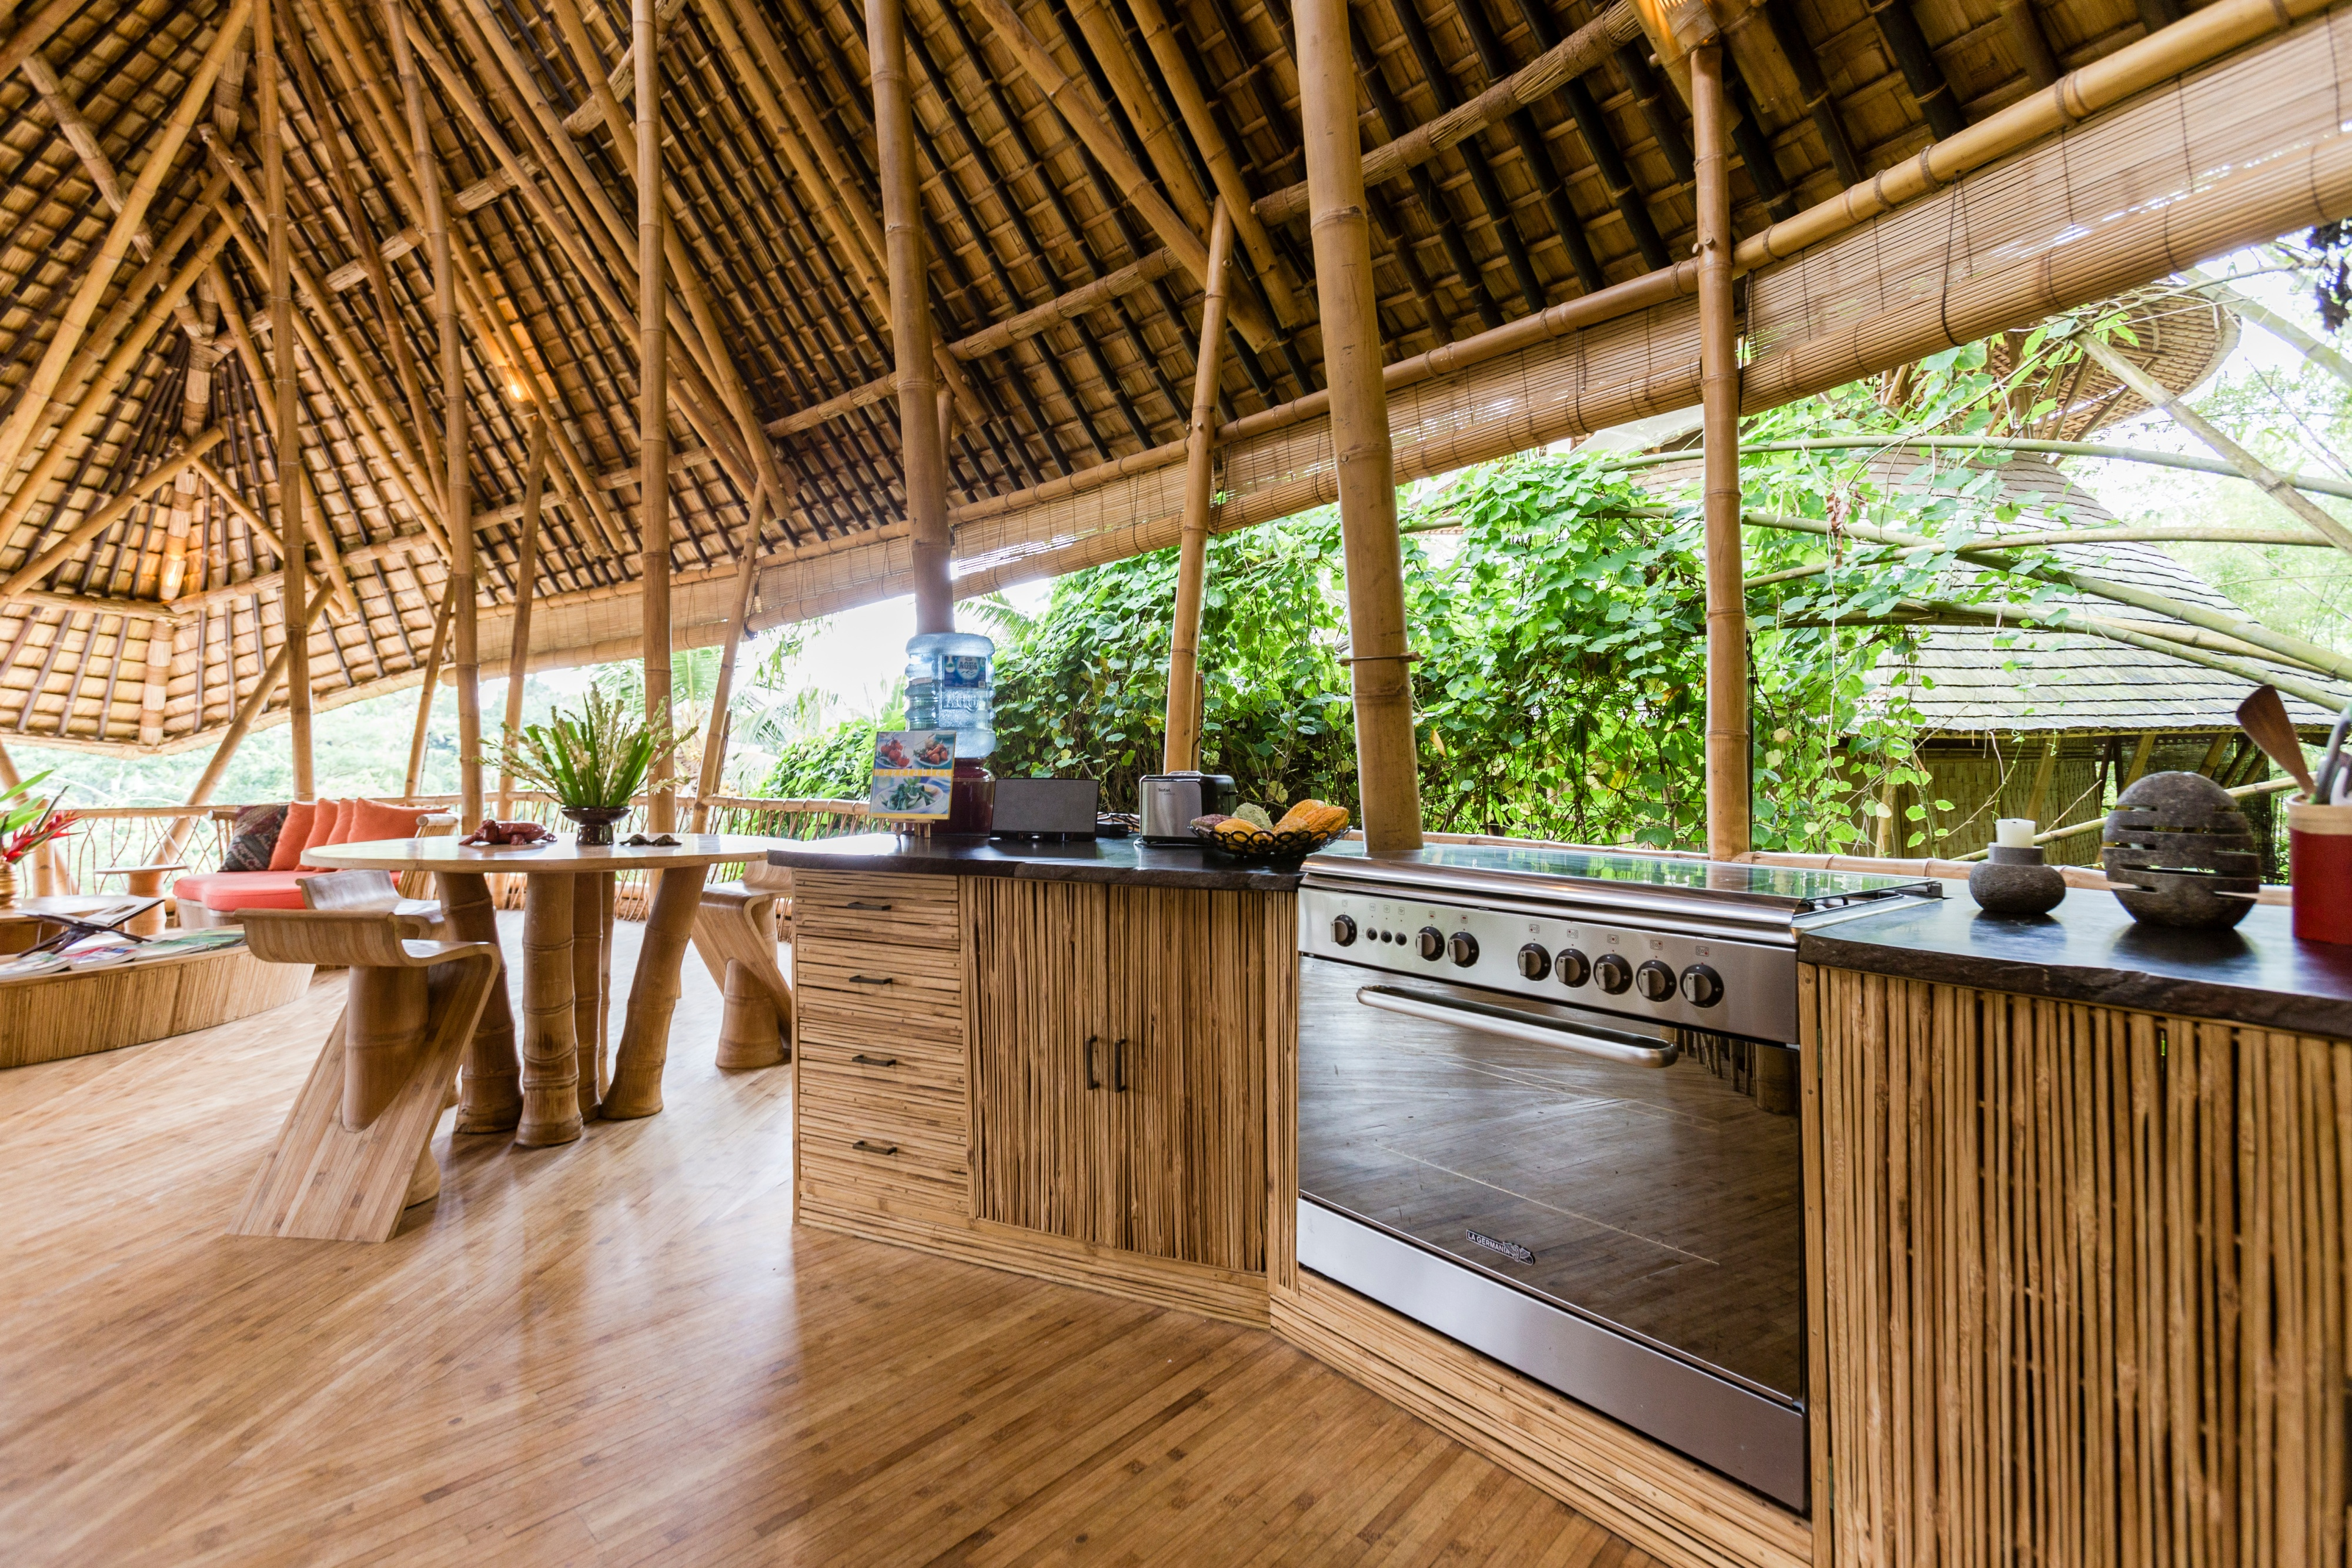 Food Defines the Way Indians Travel, Reveals Airbnb APAC Travel Survey